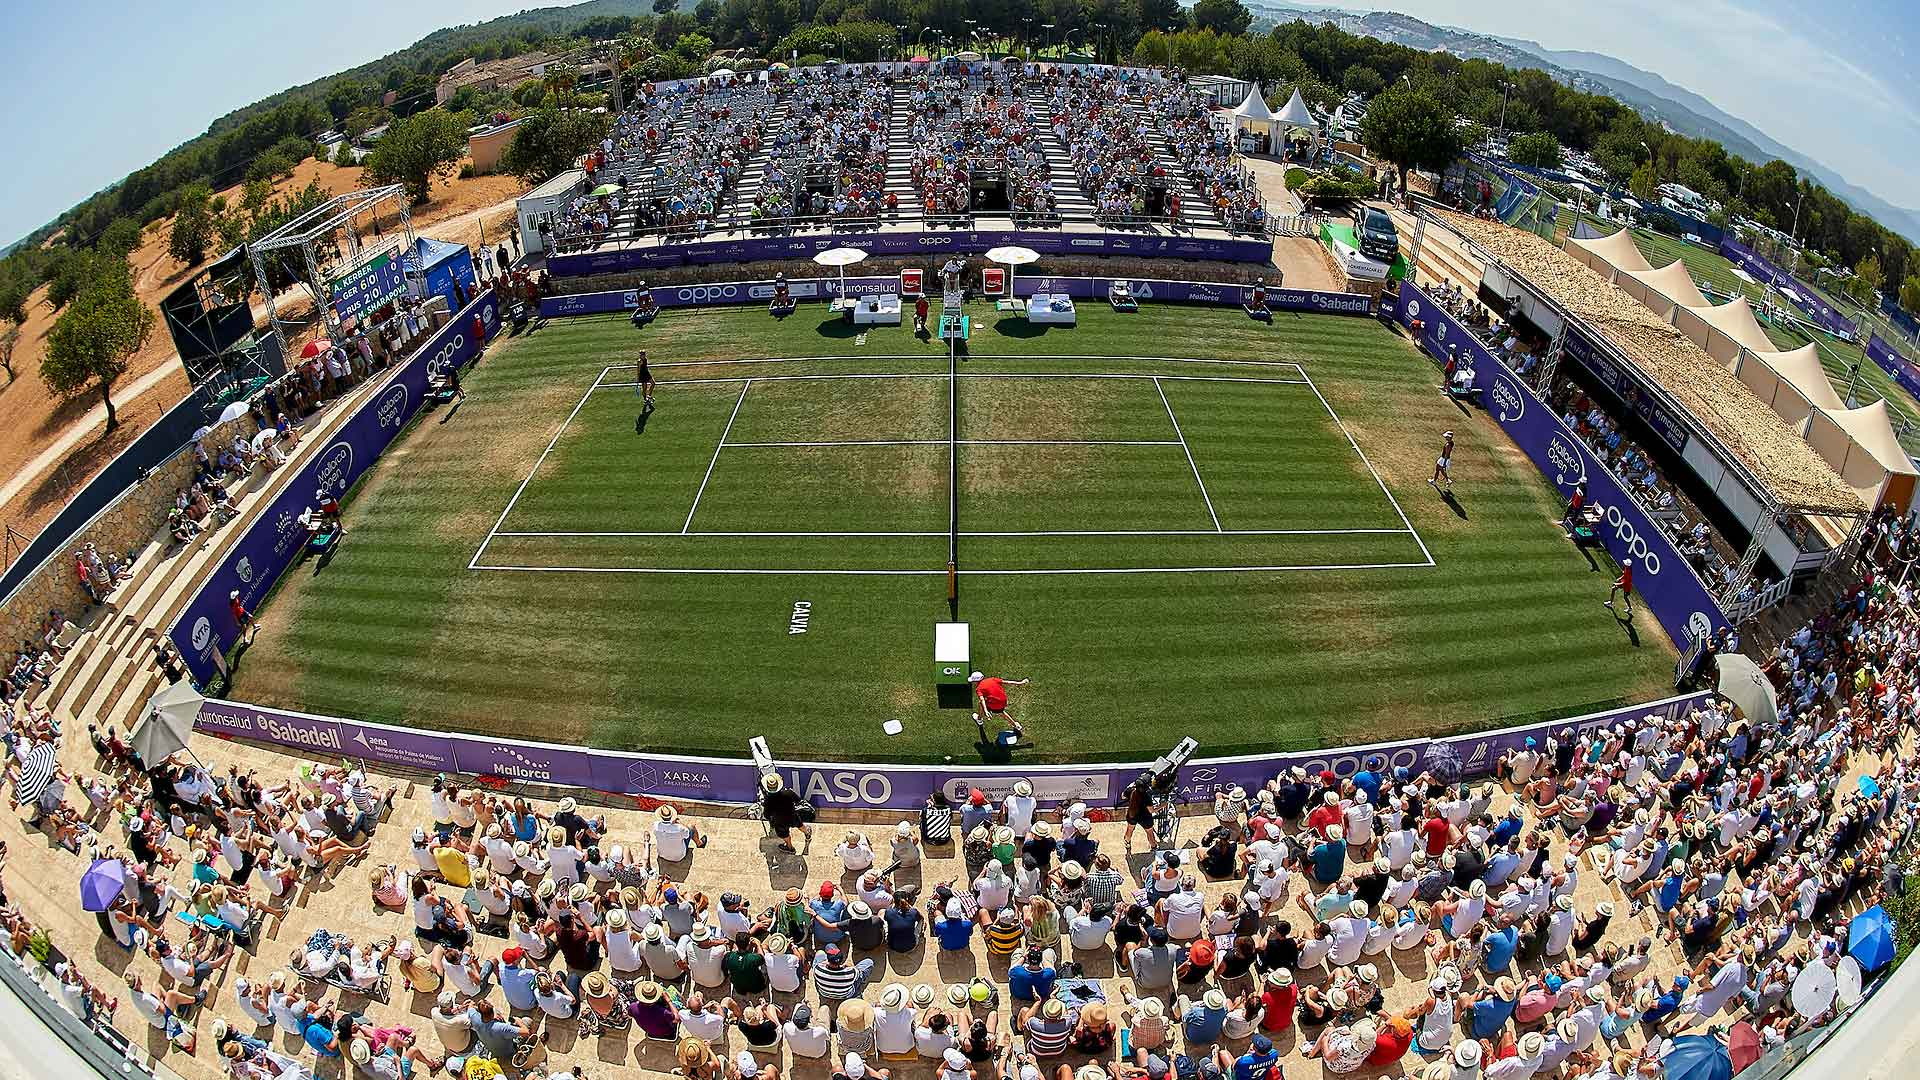 The Mallorca Championships will be held at Santa Ponca — the venue of a WTA event for the past four years — from 20-27 June 2020.